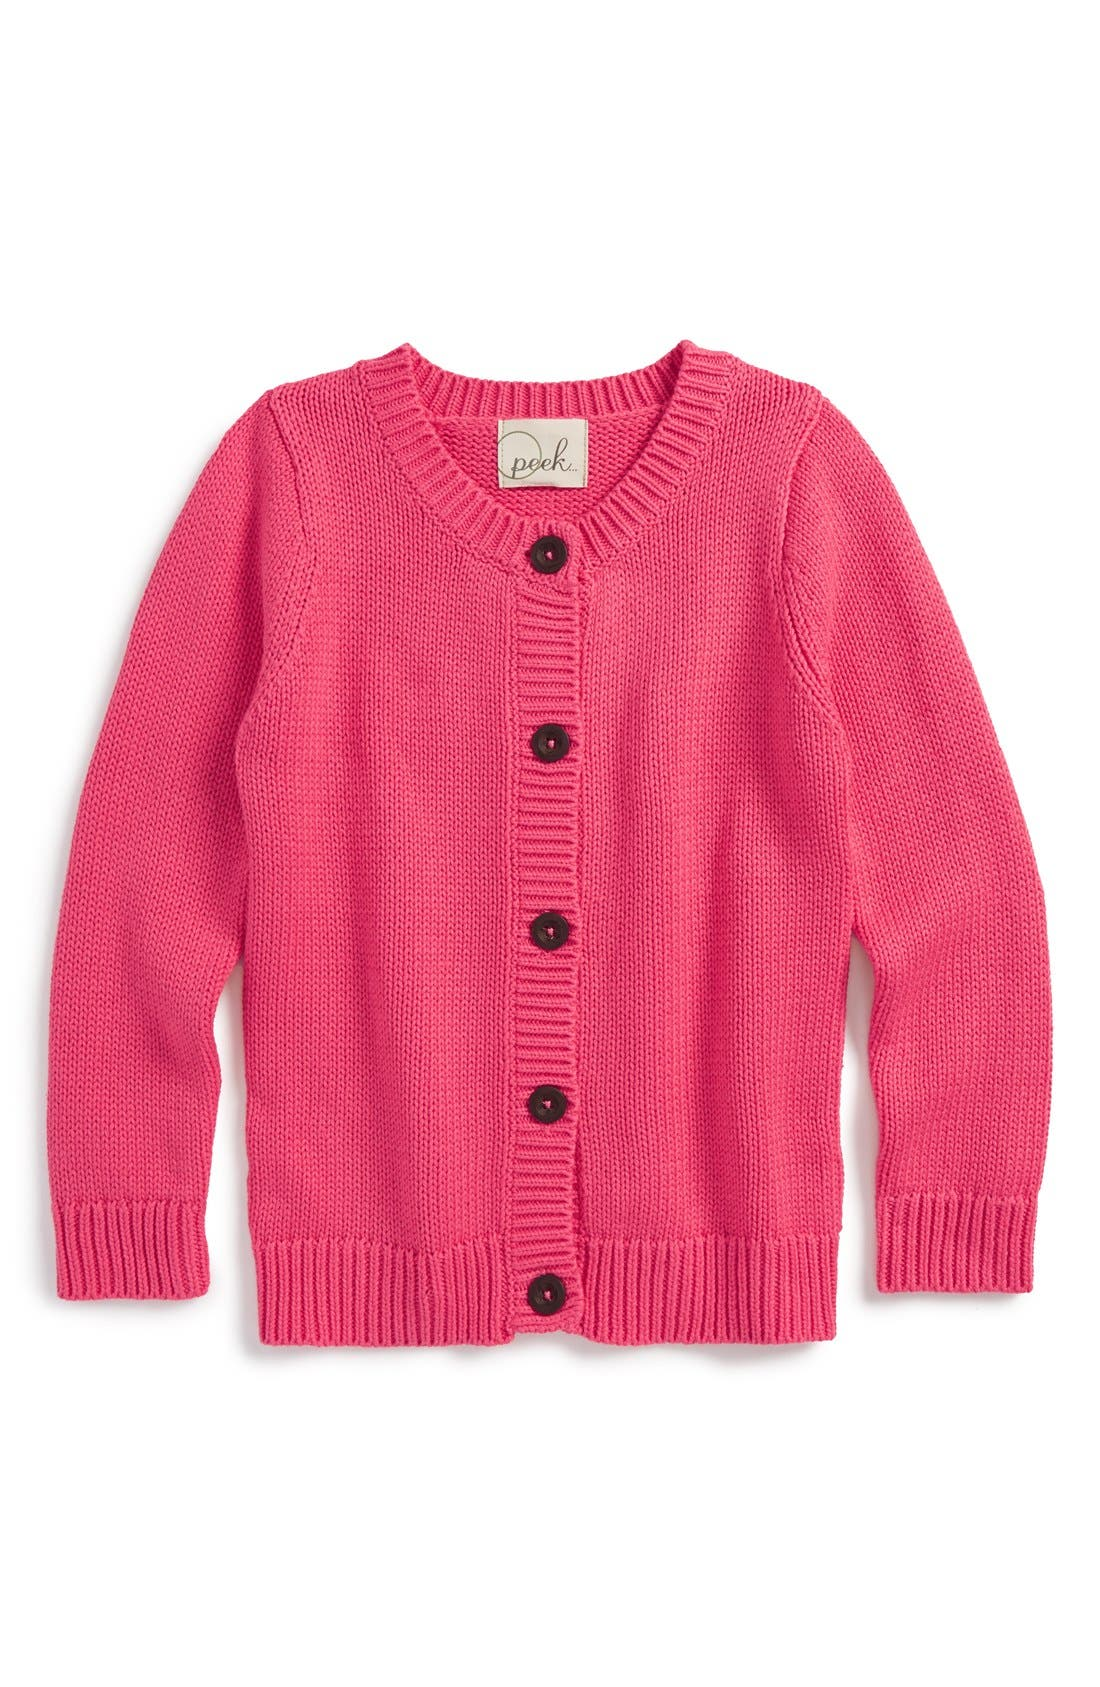 Main Image - Peek 'Brianna' Knit Cardigan (Toddler Girls, Little Girls & Big Girls)